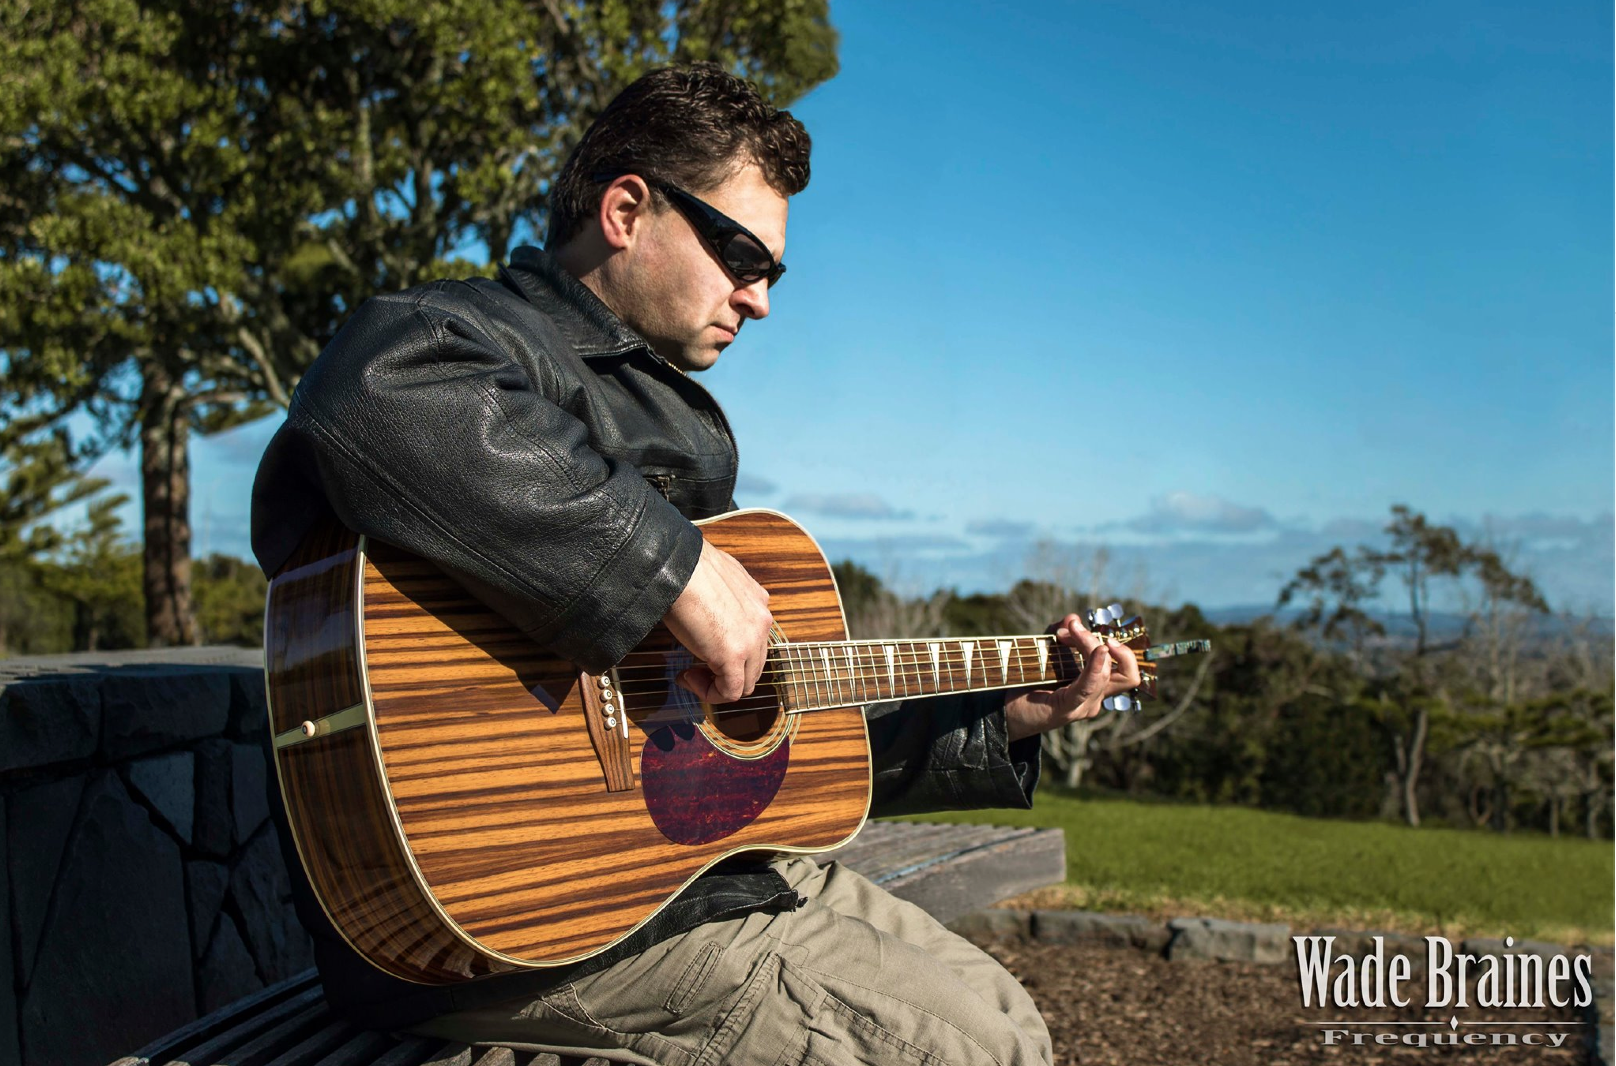 {Behind The Music} Wade Braines on Frequency